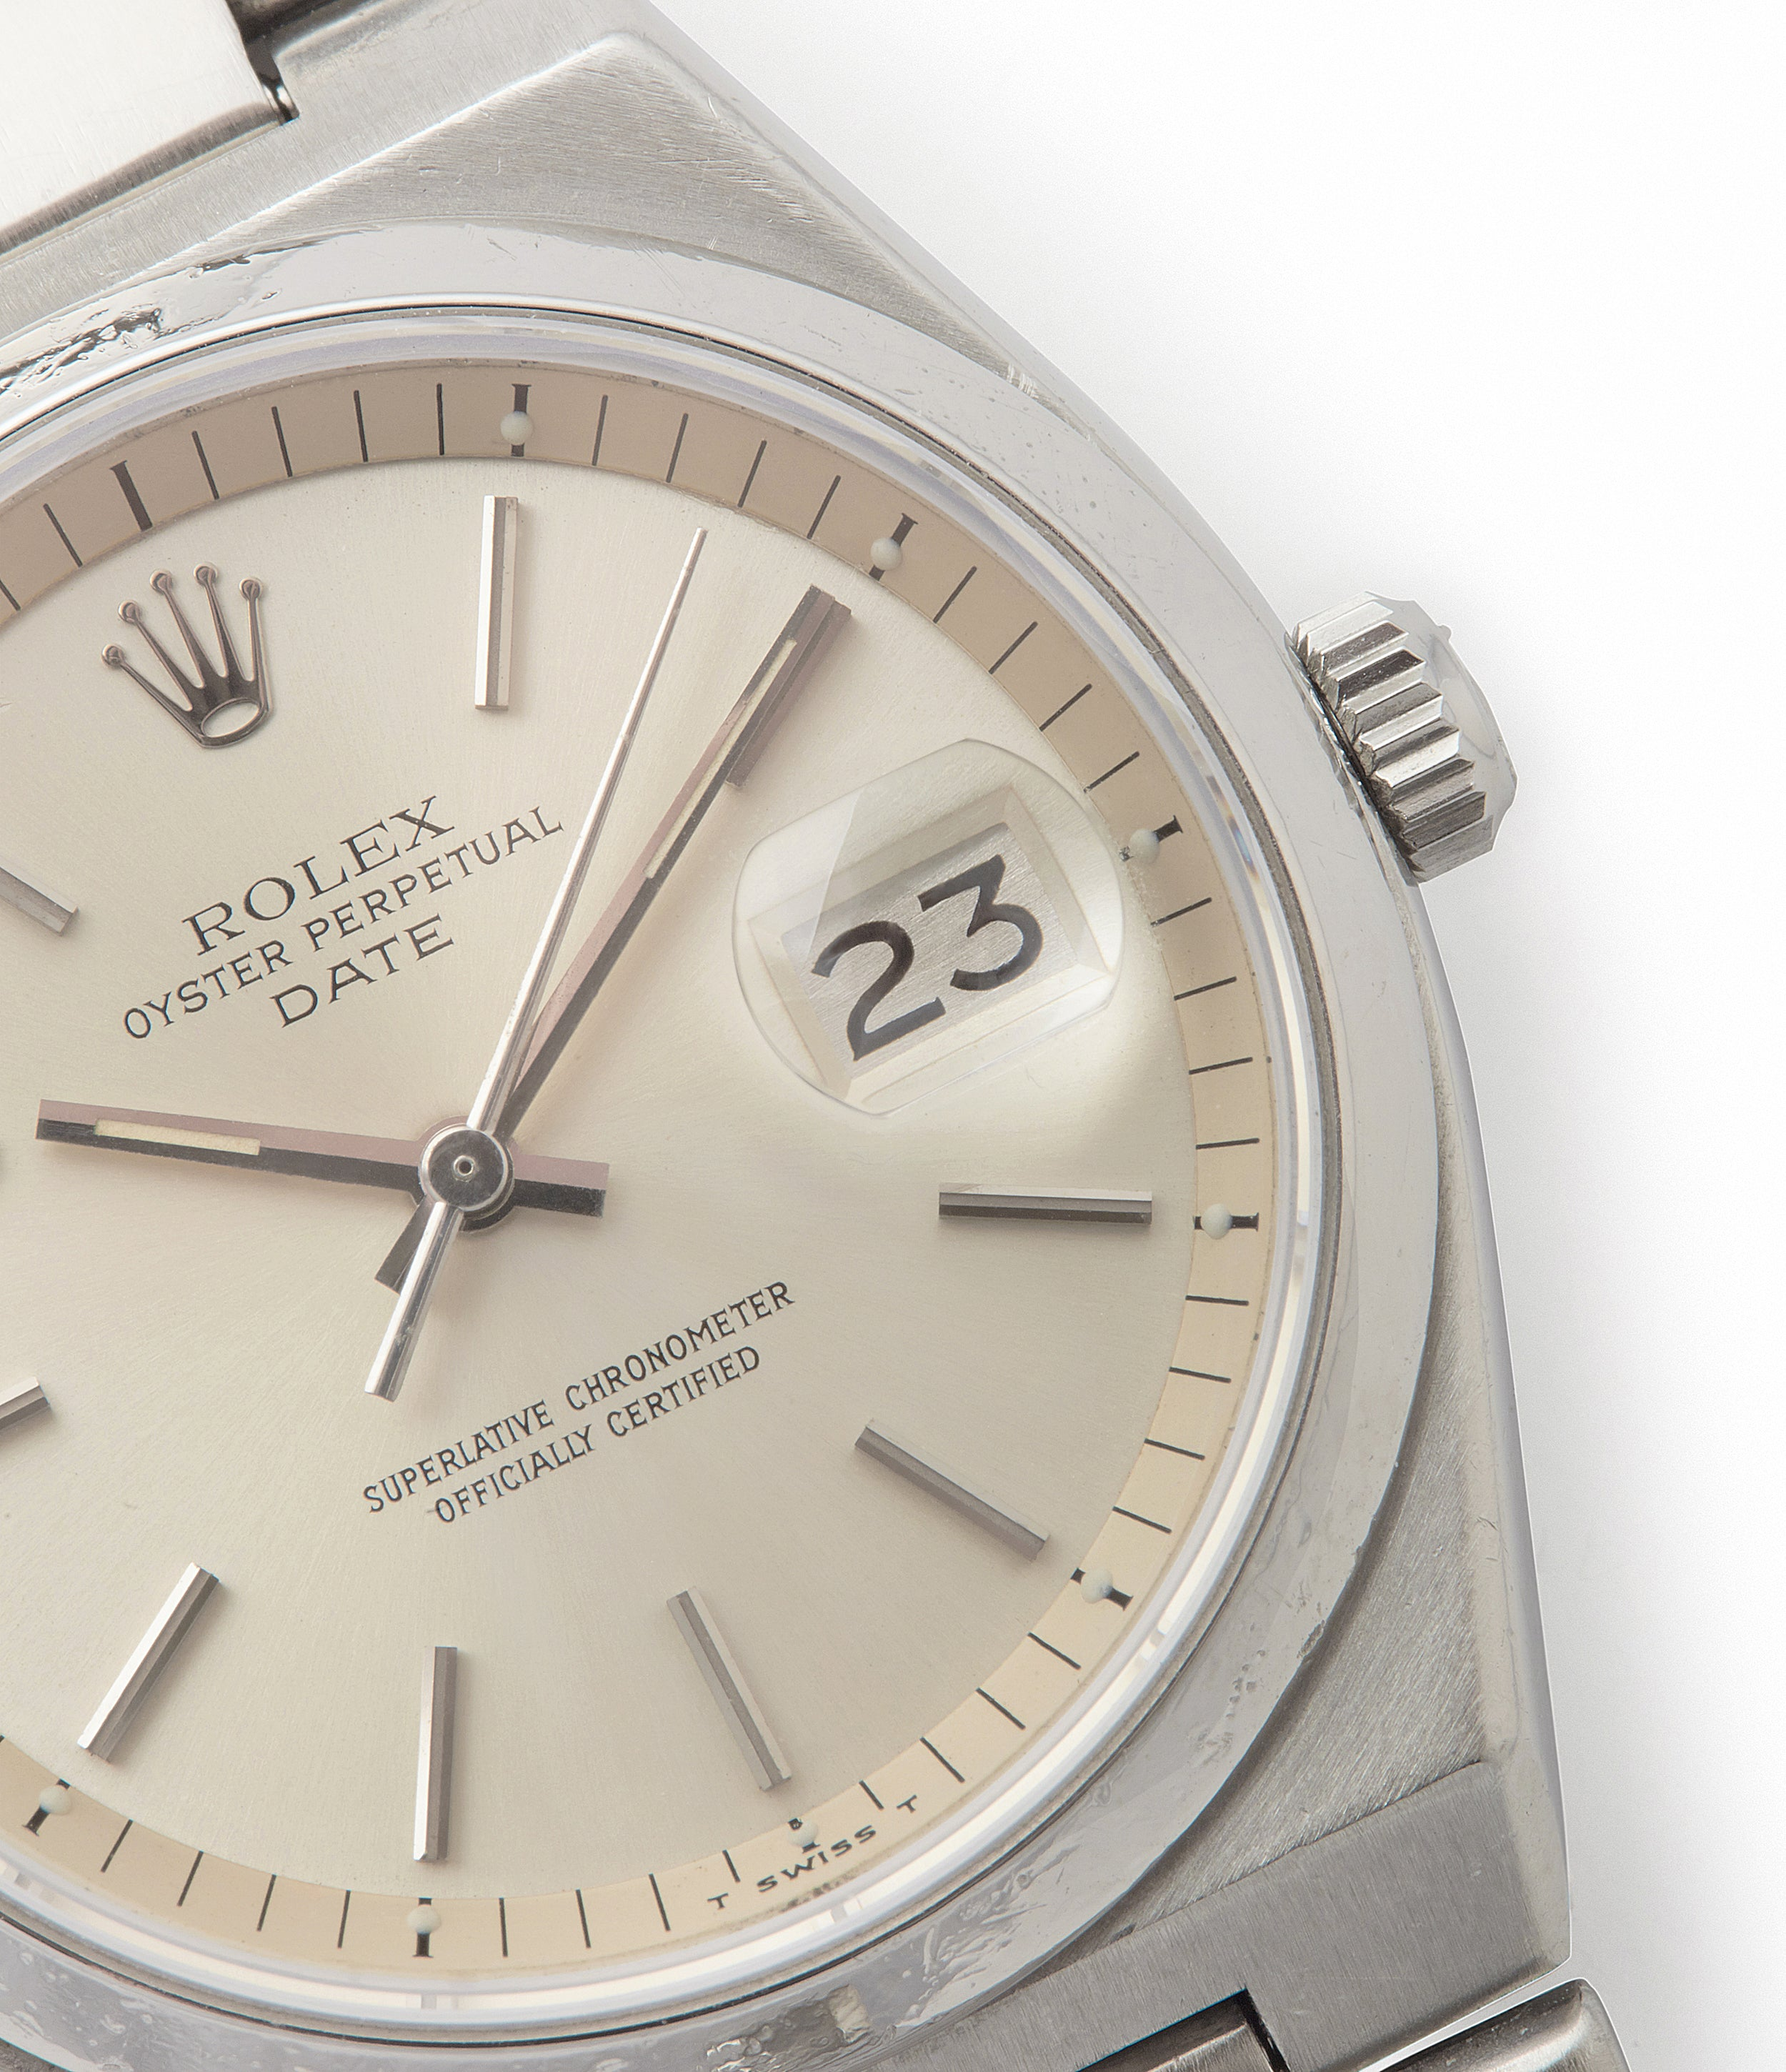 sell vintage Rolex Oyster Perpetual 1530 steel sport watch with papers for sale online at A Collected Man London UK specialist of rare watches